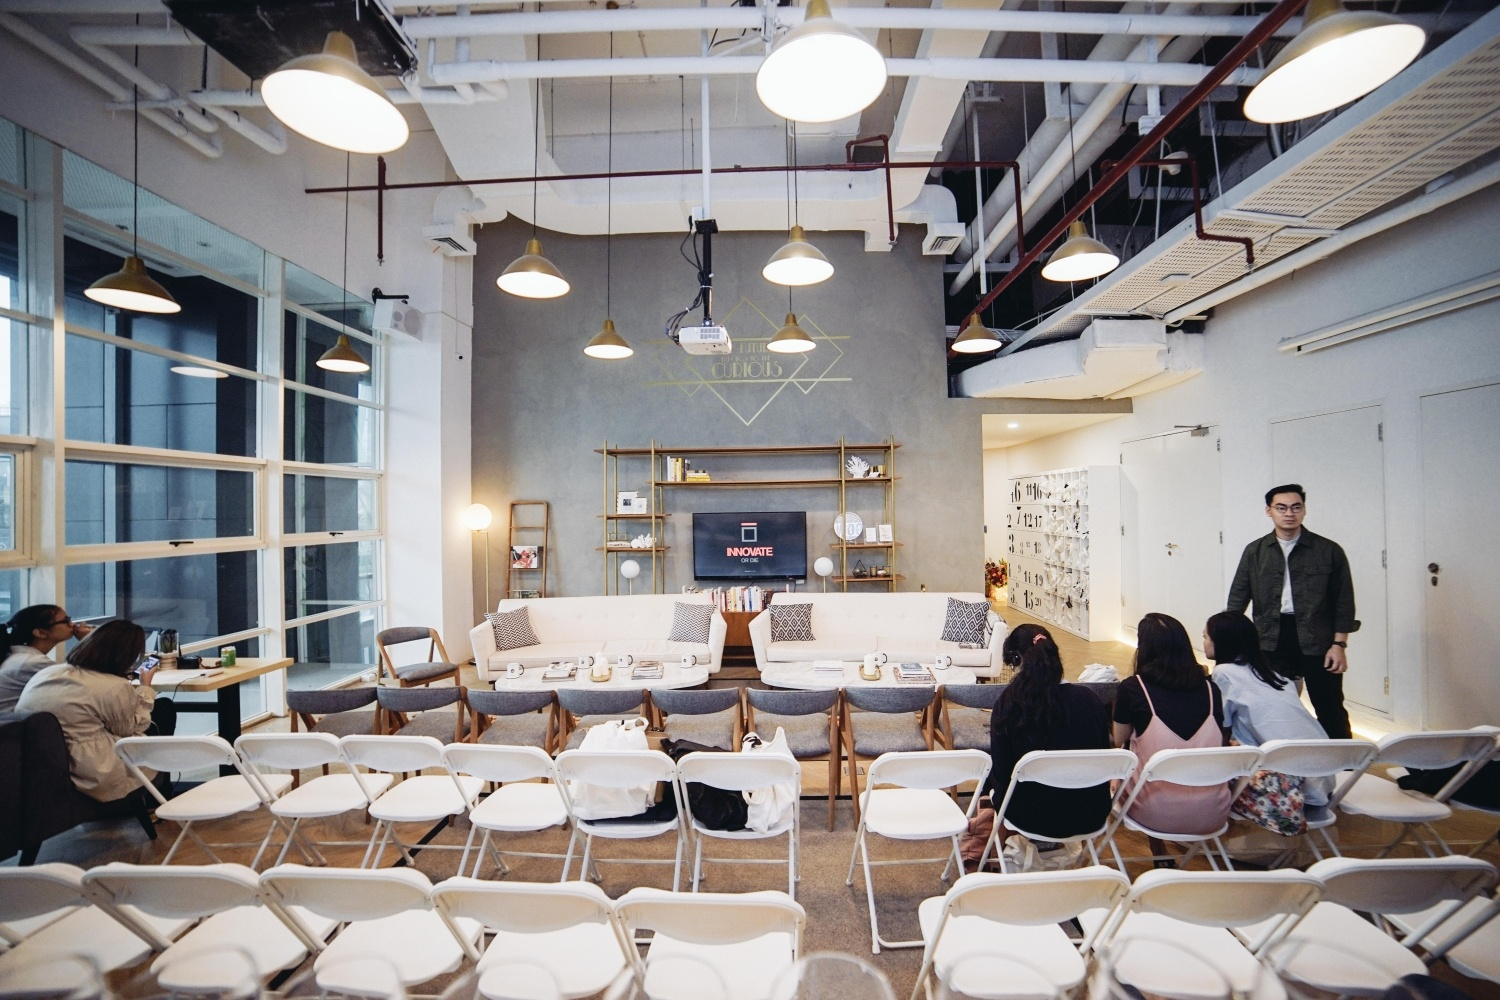 gowork event space